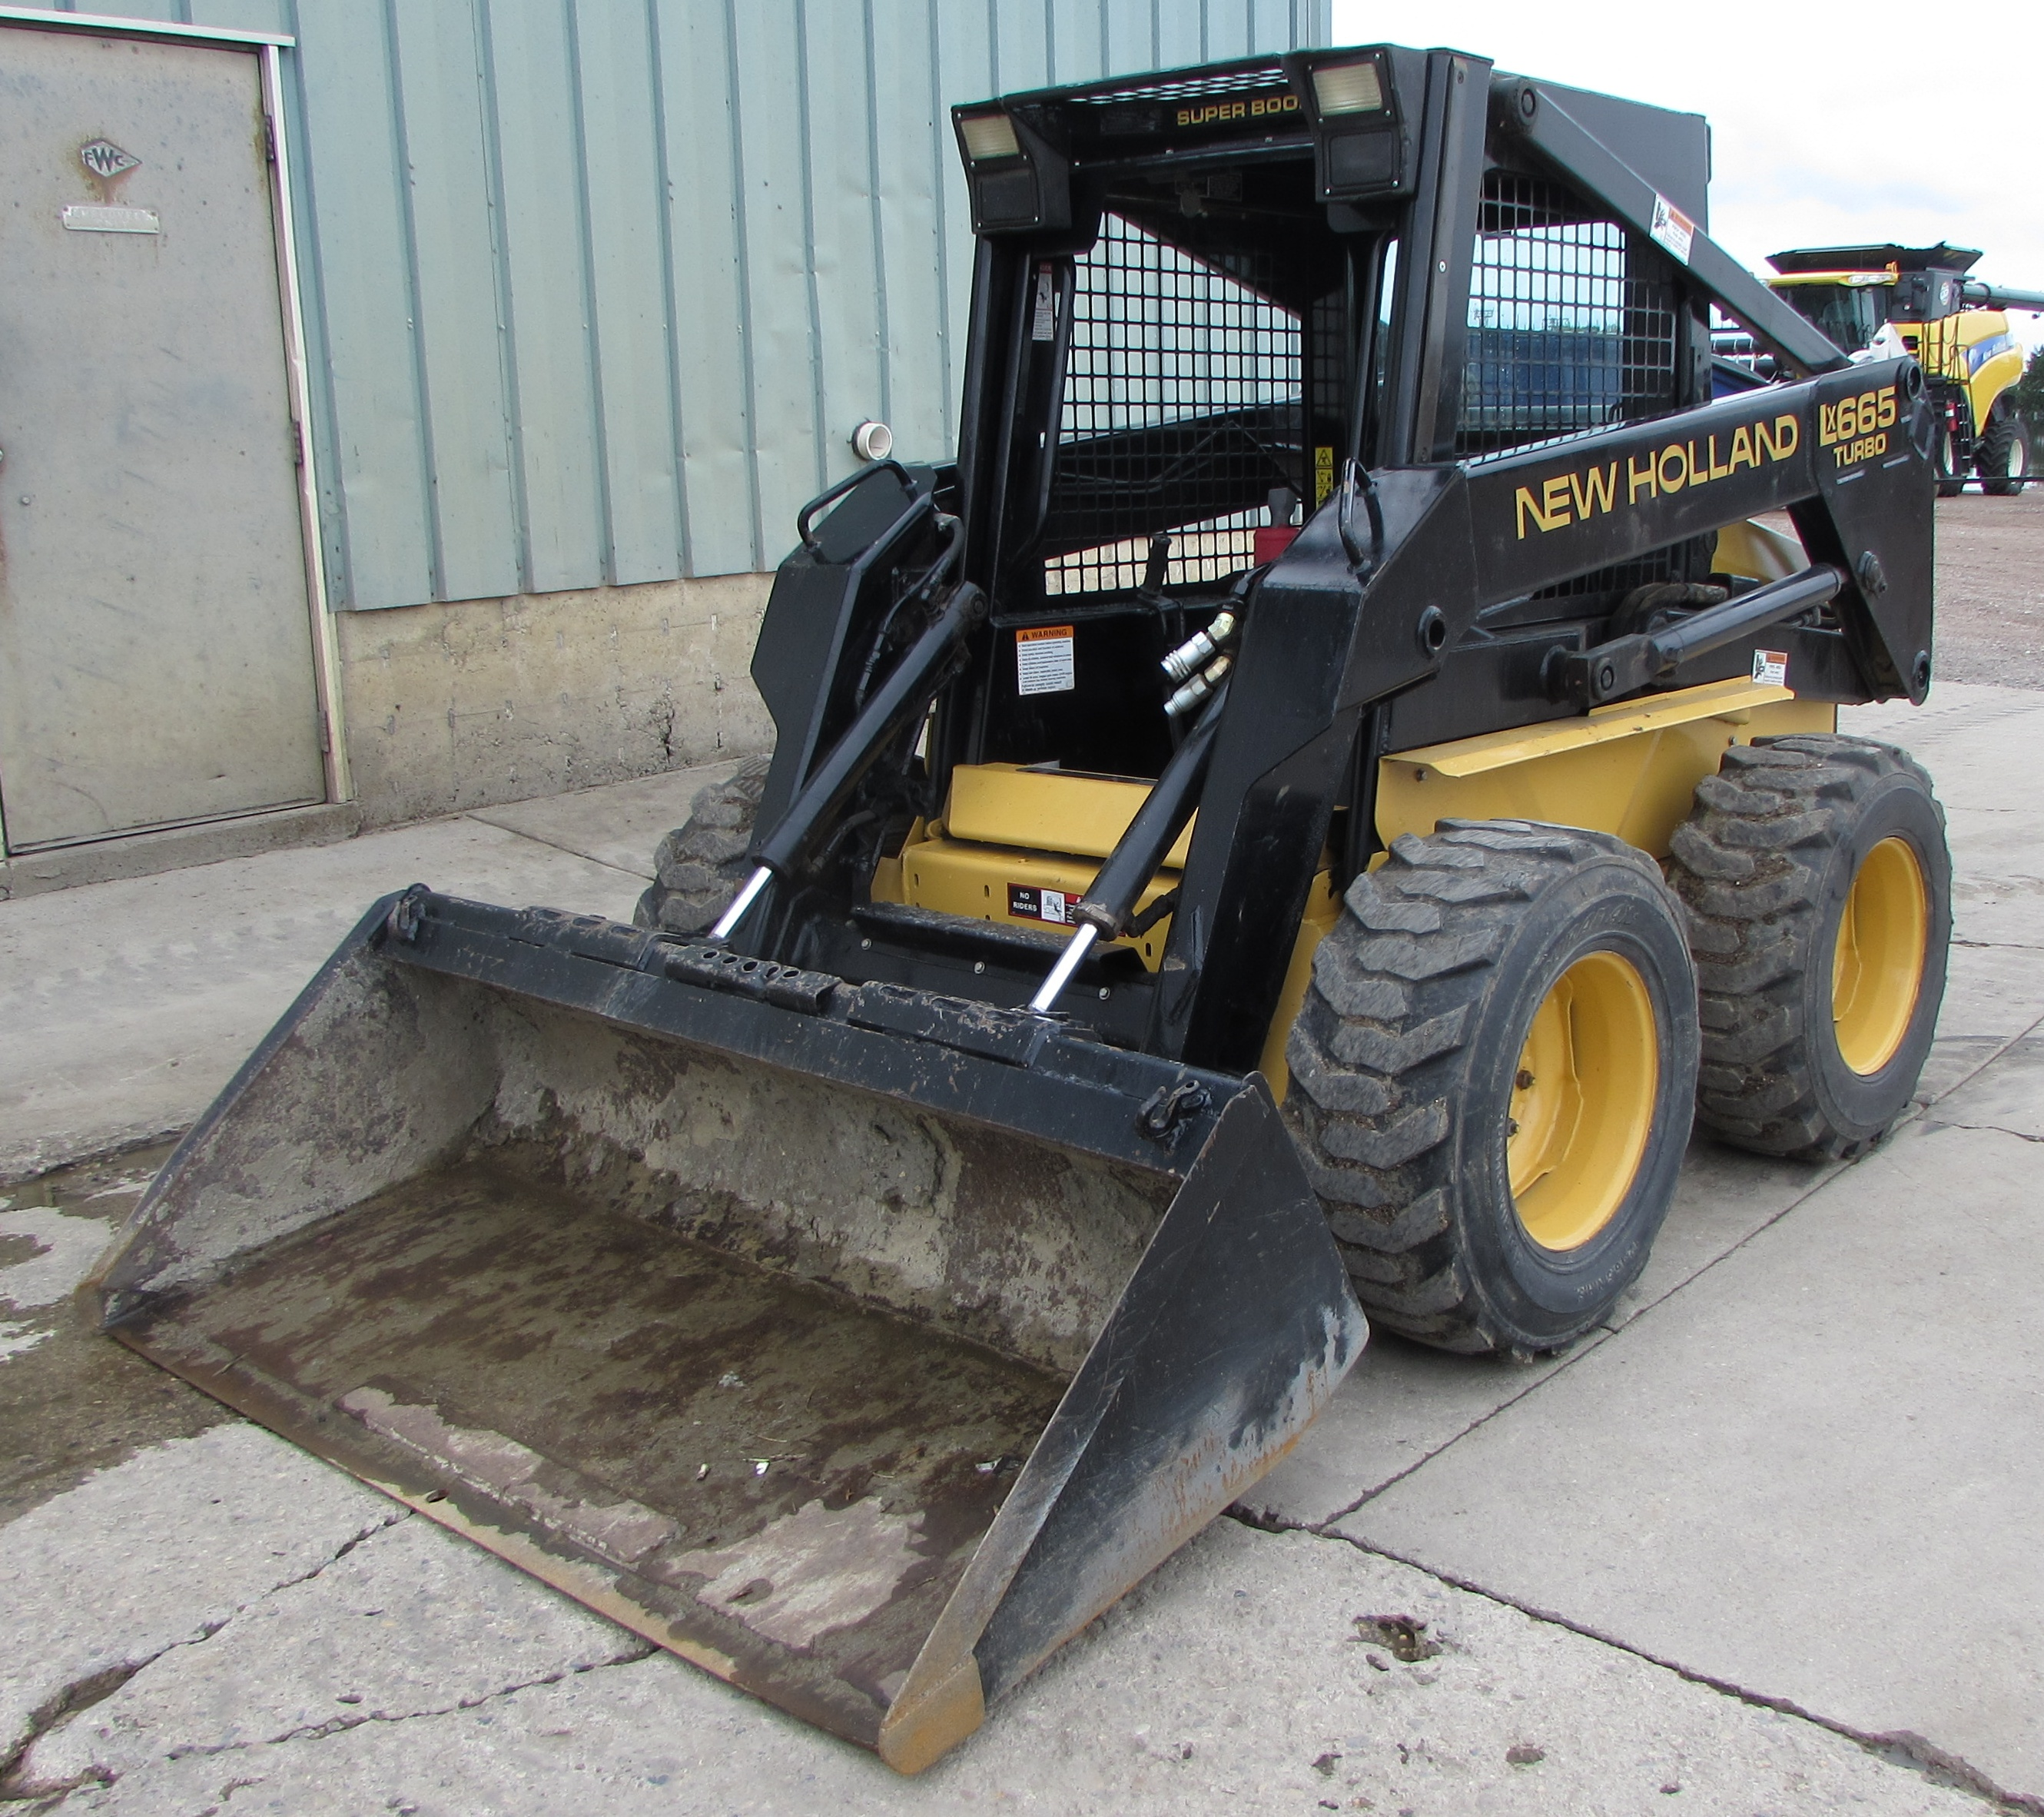 1996 New Holland LX665 Skid Steer Loader for sale in Redwood